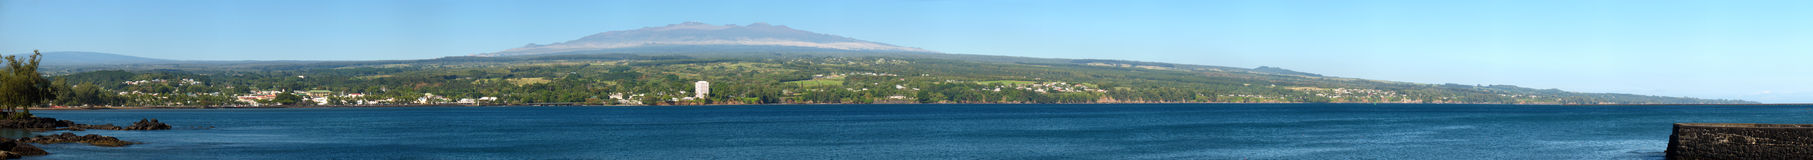 Mauna Kea Panorama Royalty Free Stock Image